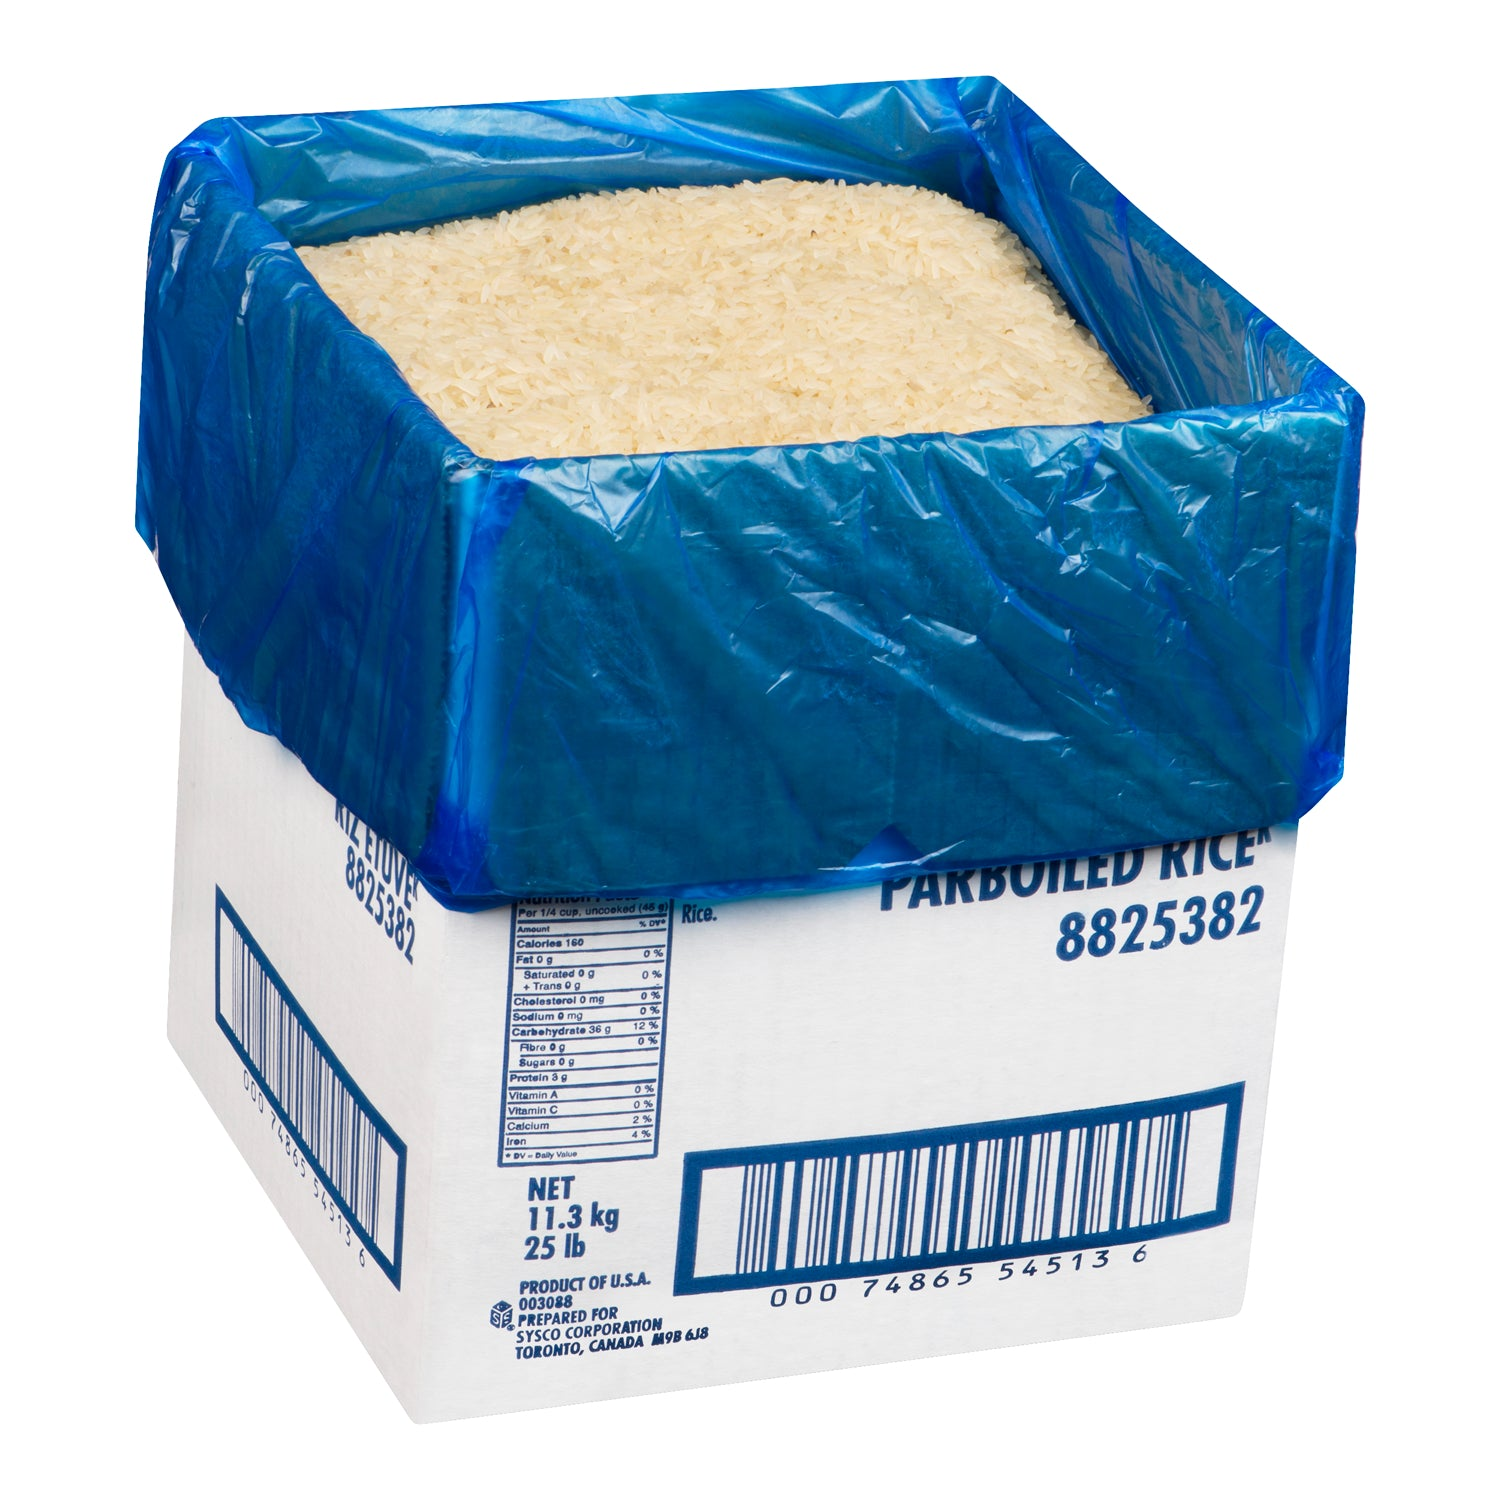 Sysco Imperial Par Boiled Rice 11.13 kg - 1 Pack [$2.60/kg]